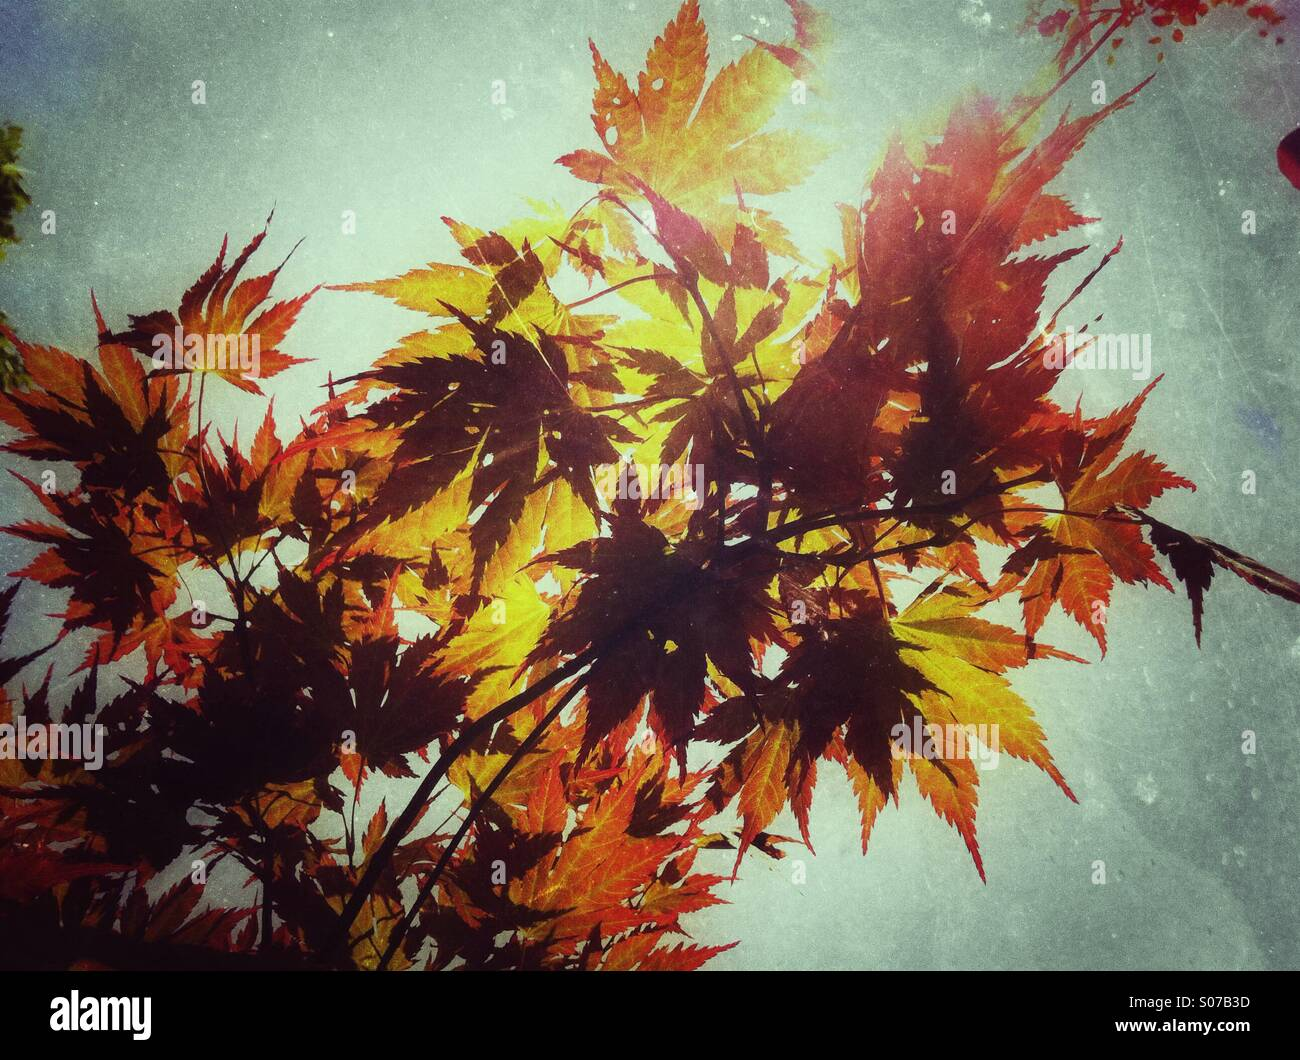 Autumn maple leaves - Stock Image